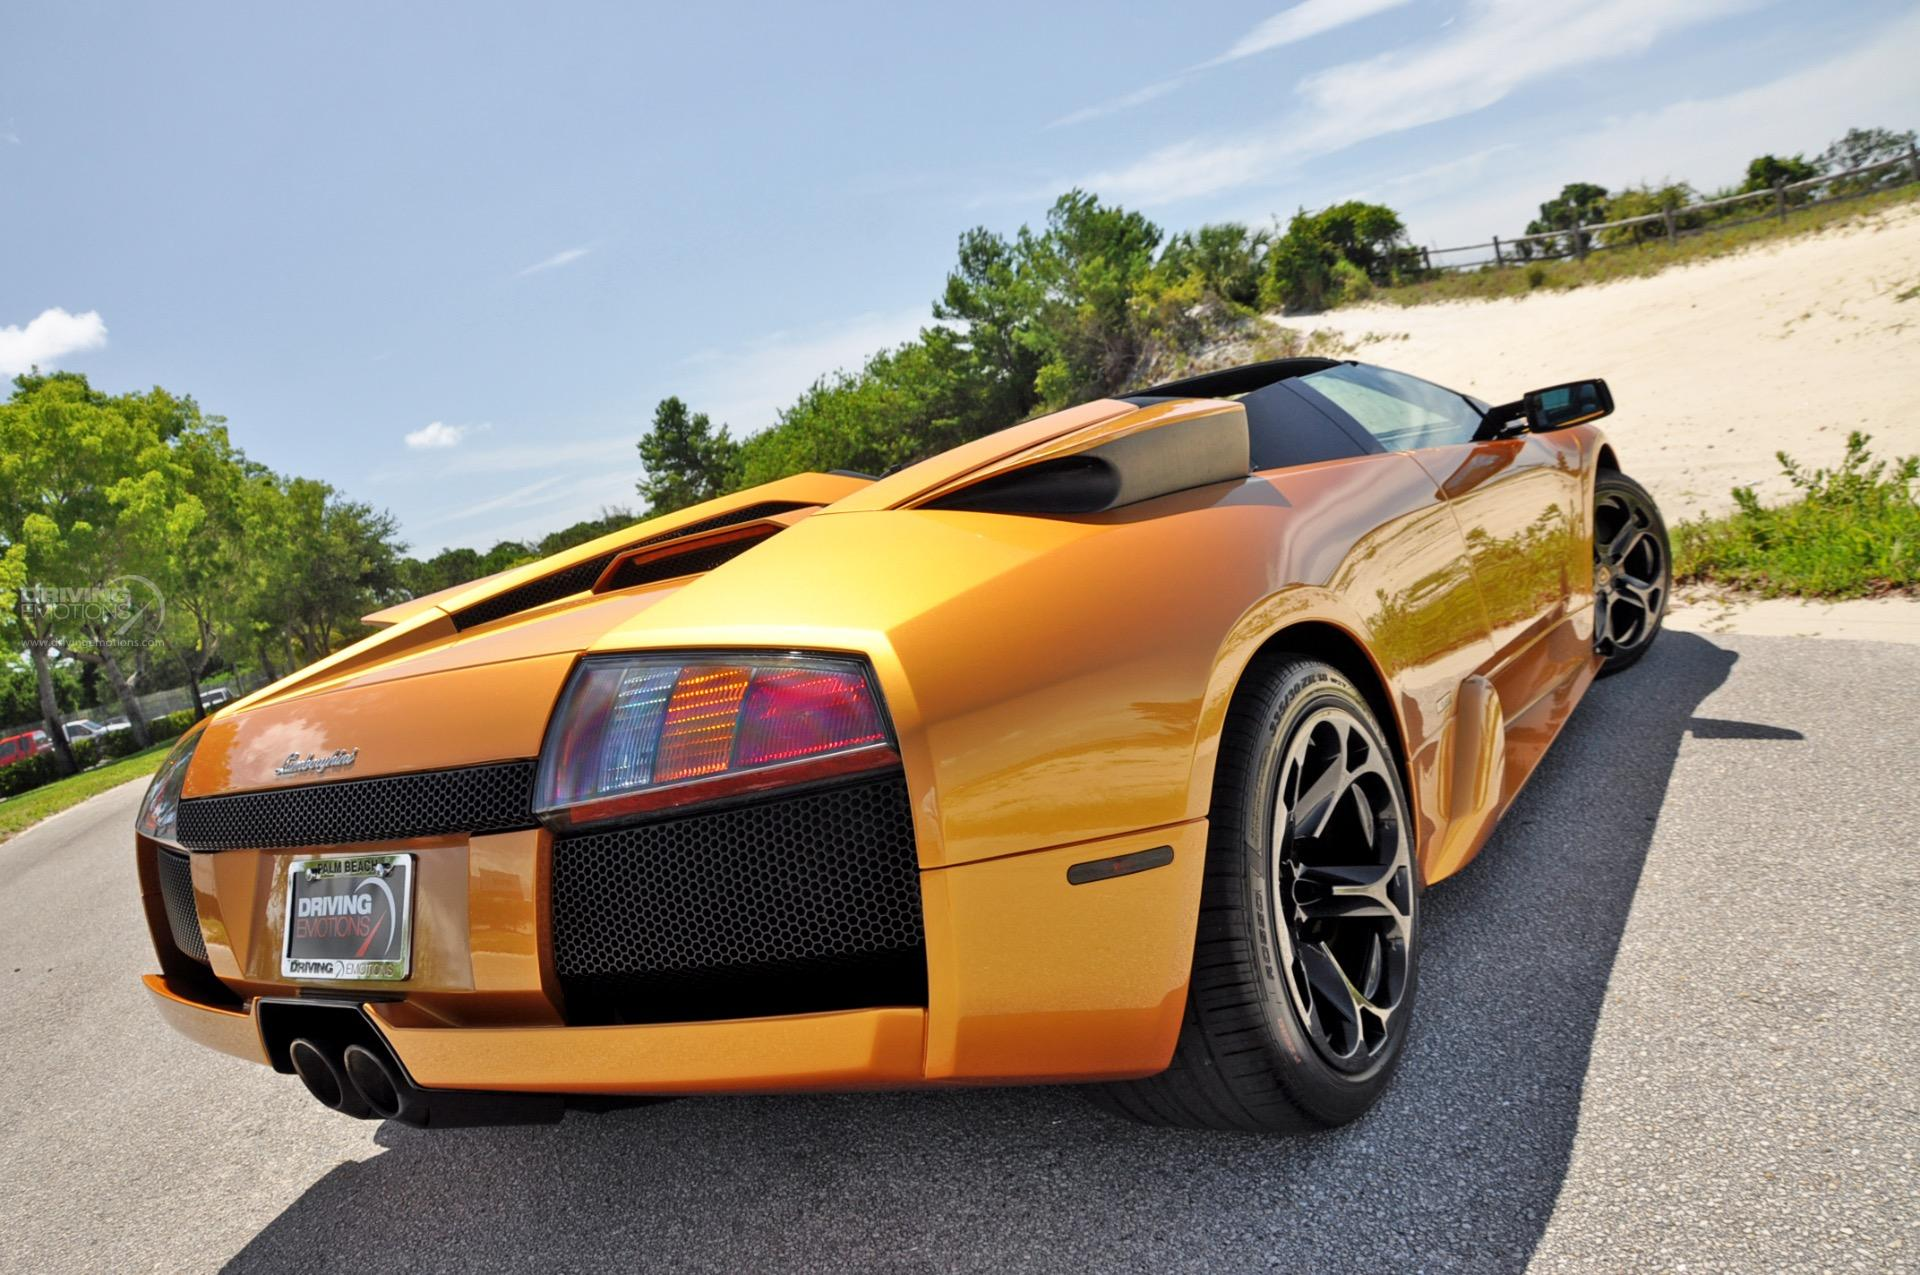 2005 lamborghini murcielago for sale 199 900 1469024. Black Bedroom Furniture Sets. Home Design Ideas